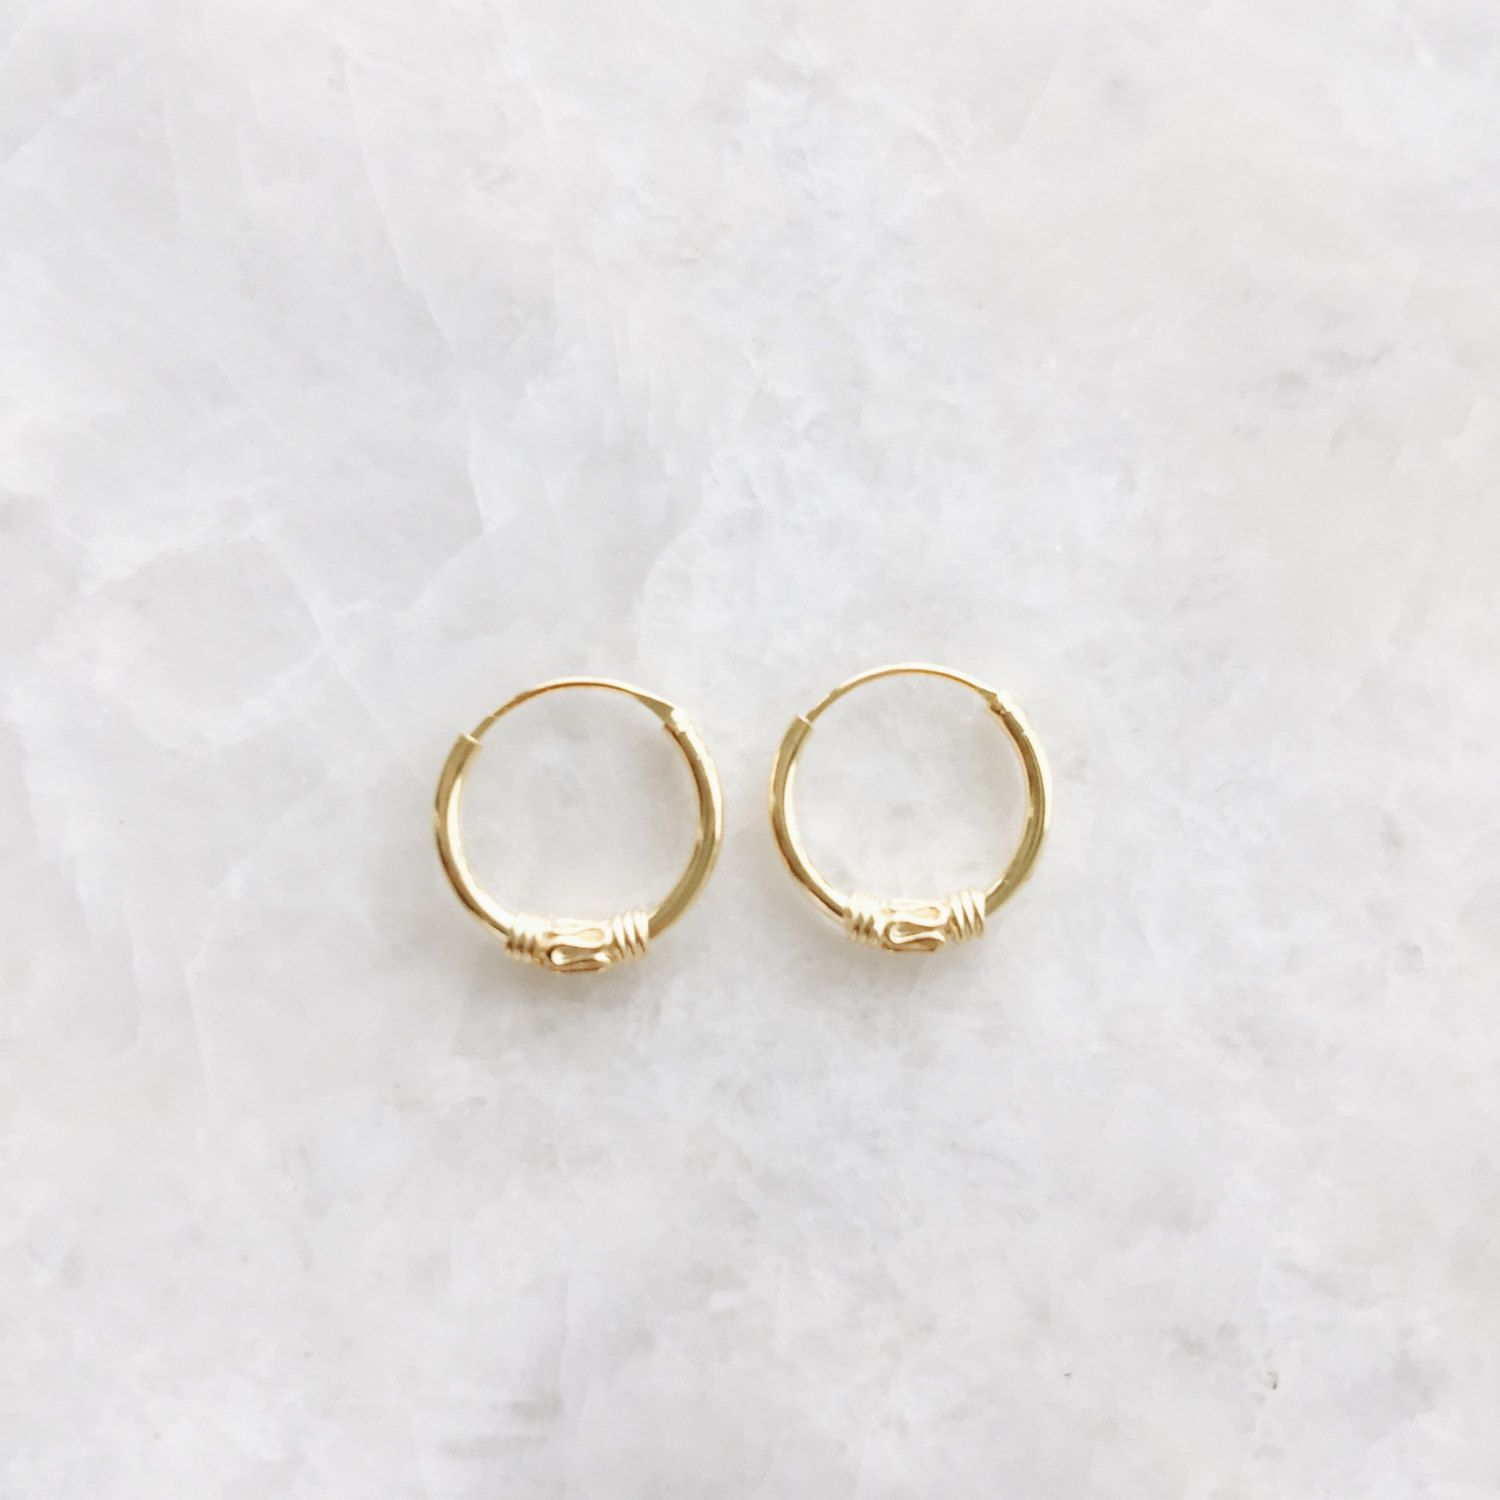 Gold Plated 12mm Ear Hoops, Tiny Gold Balinese Hoop Earrings, Tribal Style  Earrings, 12mm Hoop Earrings (h117)